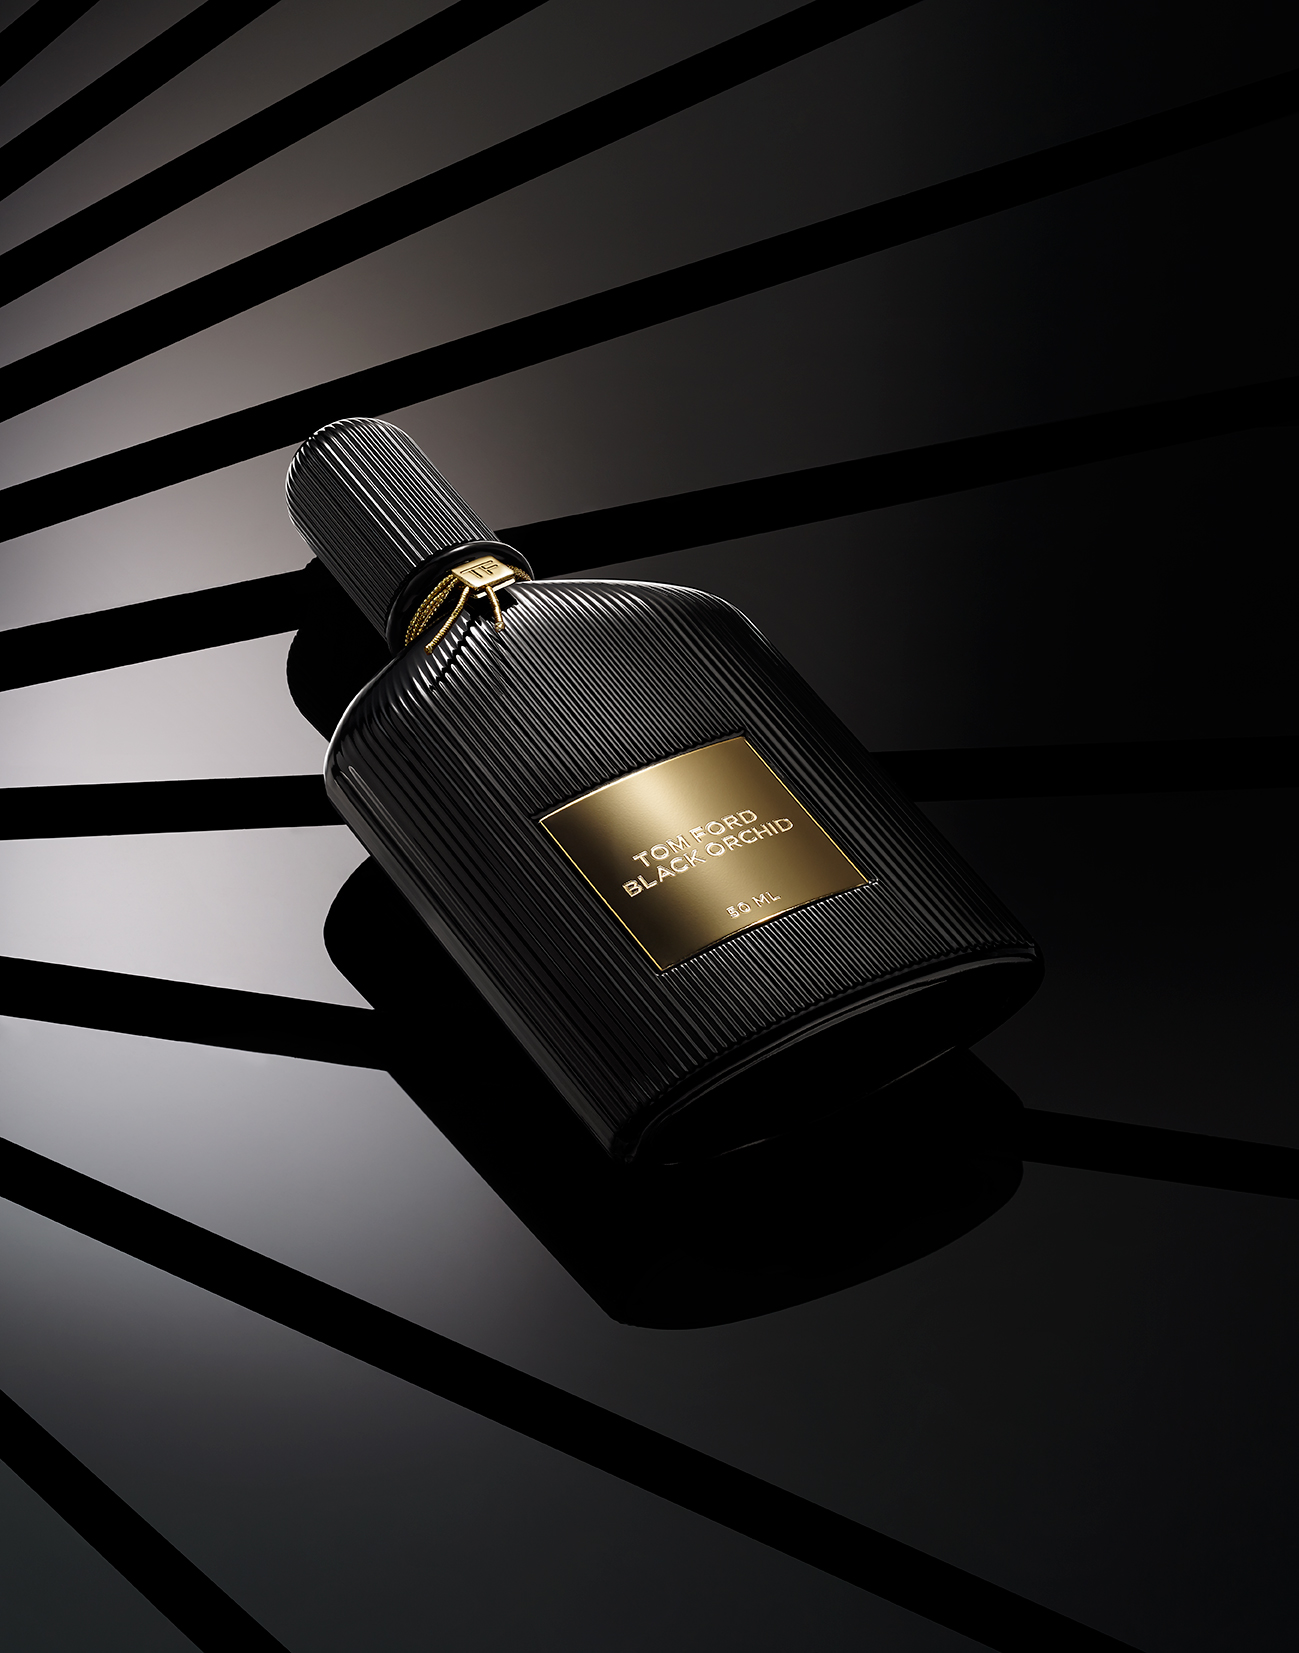 TOM FORD FRAGRANCE SHOT ON GRADIENT BACKGROUND BY DAVID FILIBERTI